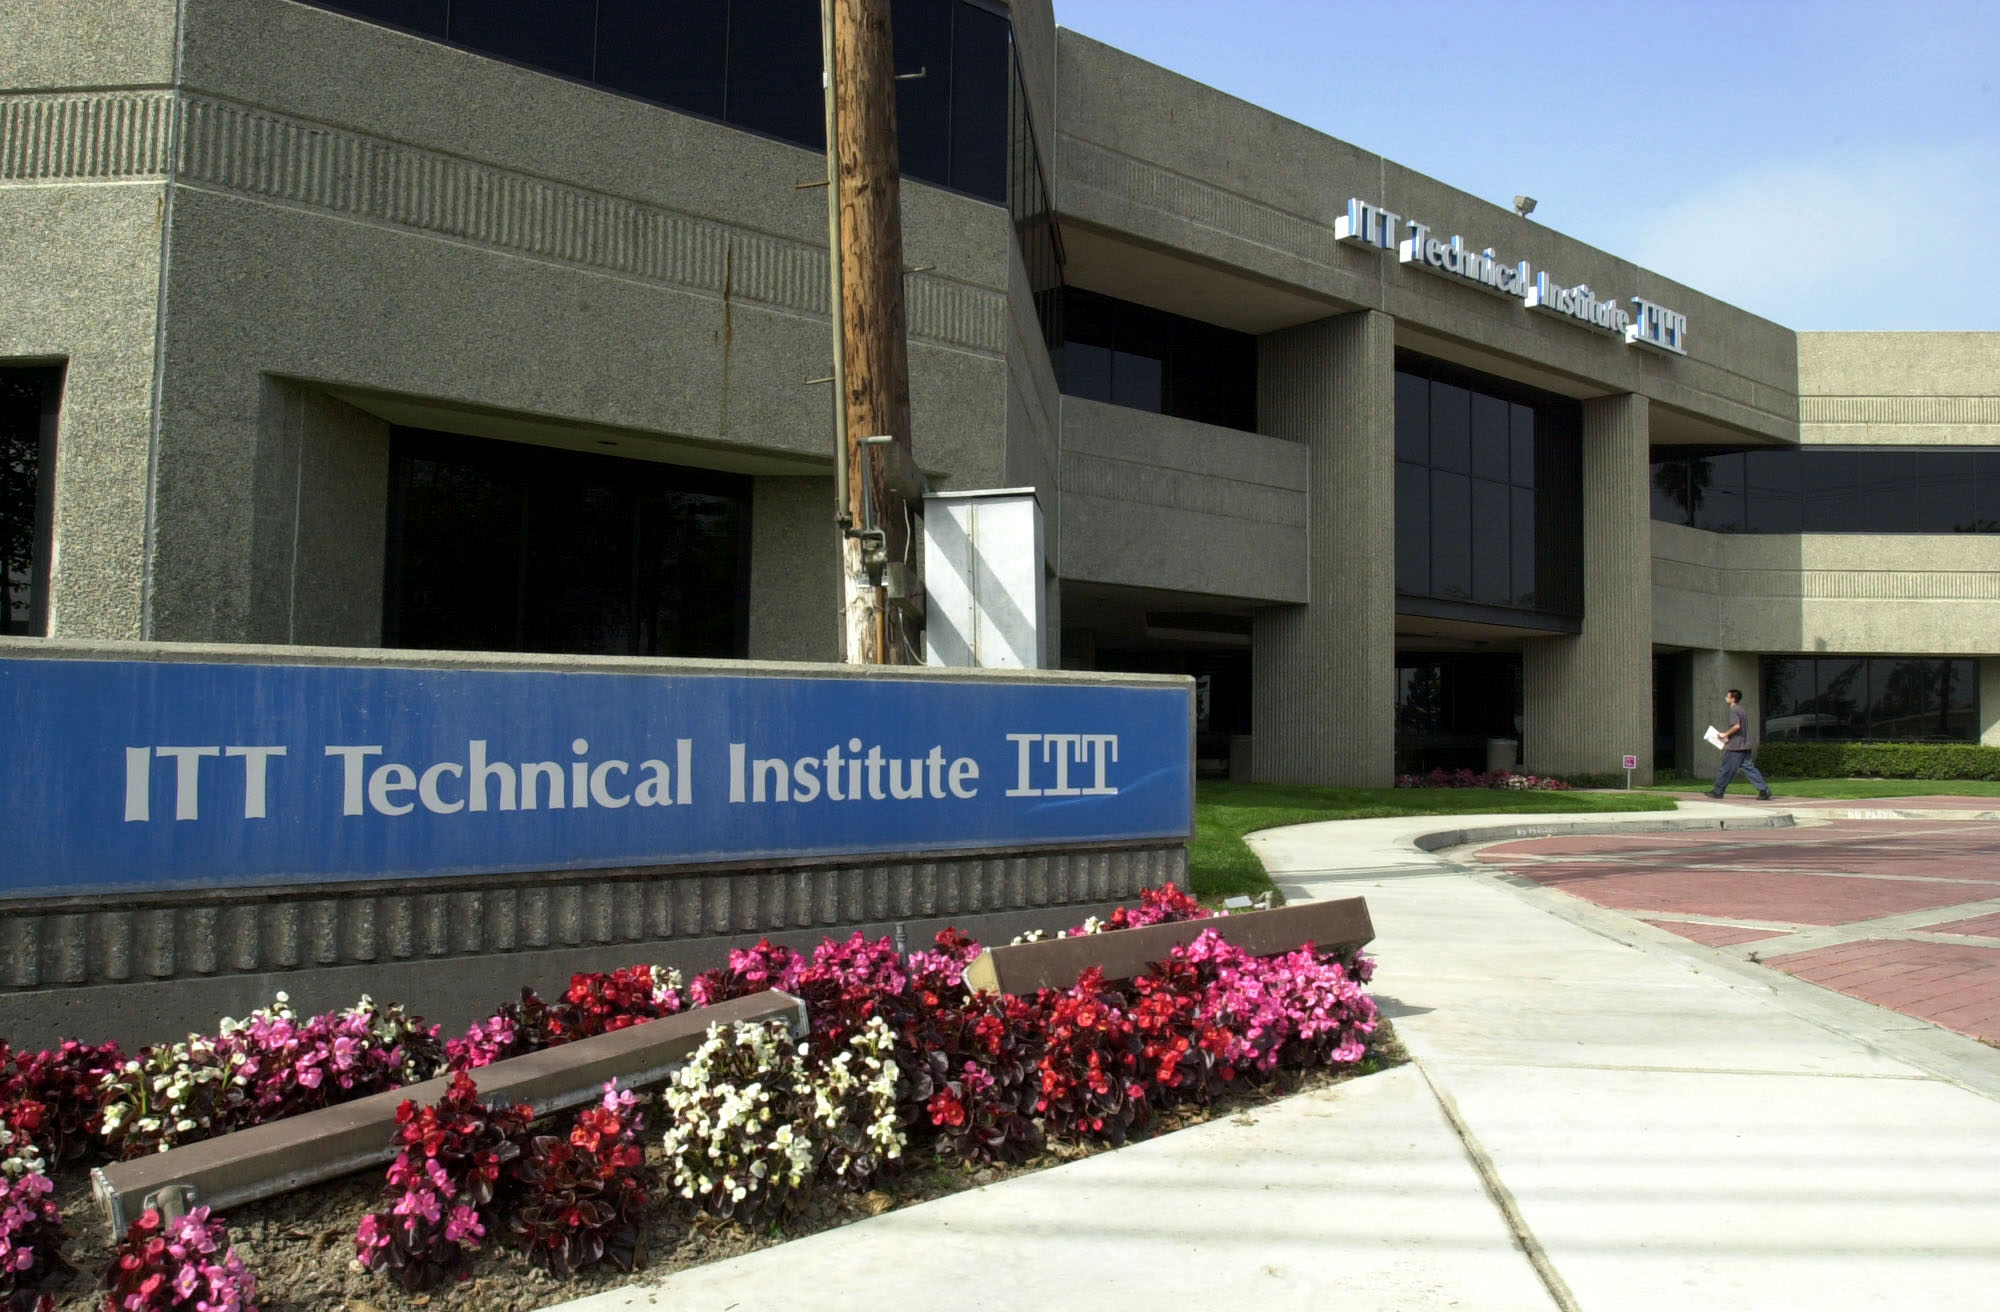 The campus of ITT Technical Institute in Anaheim, Calif., on March 15, 2004.